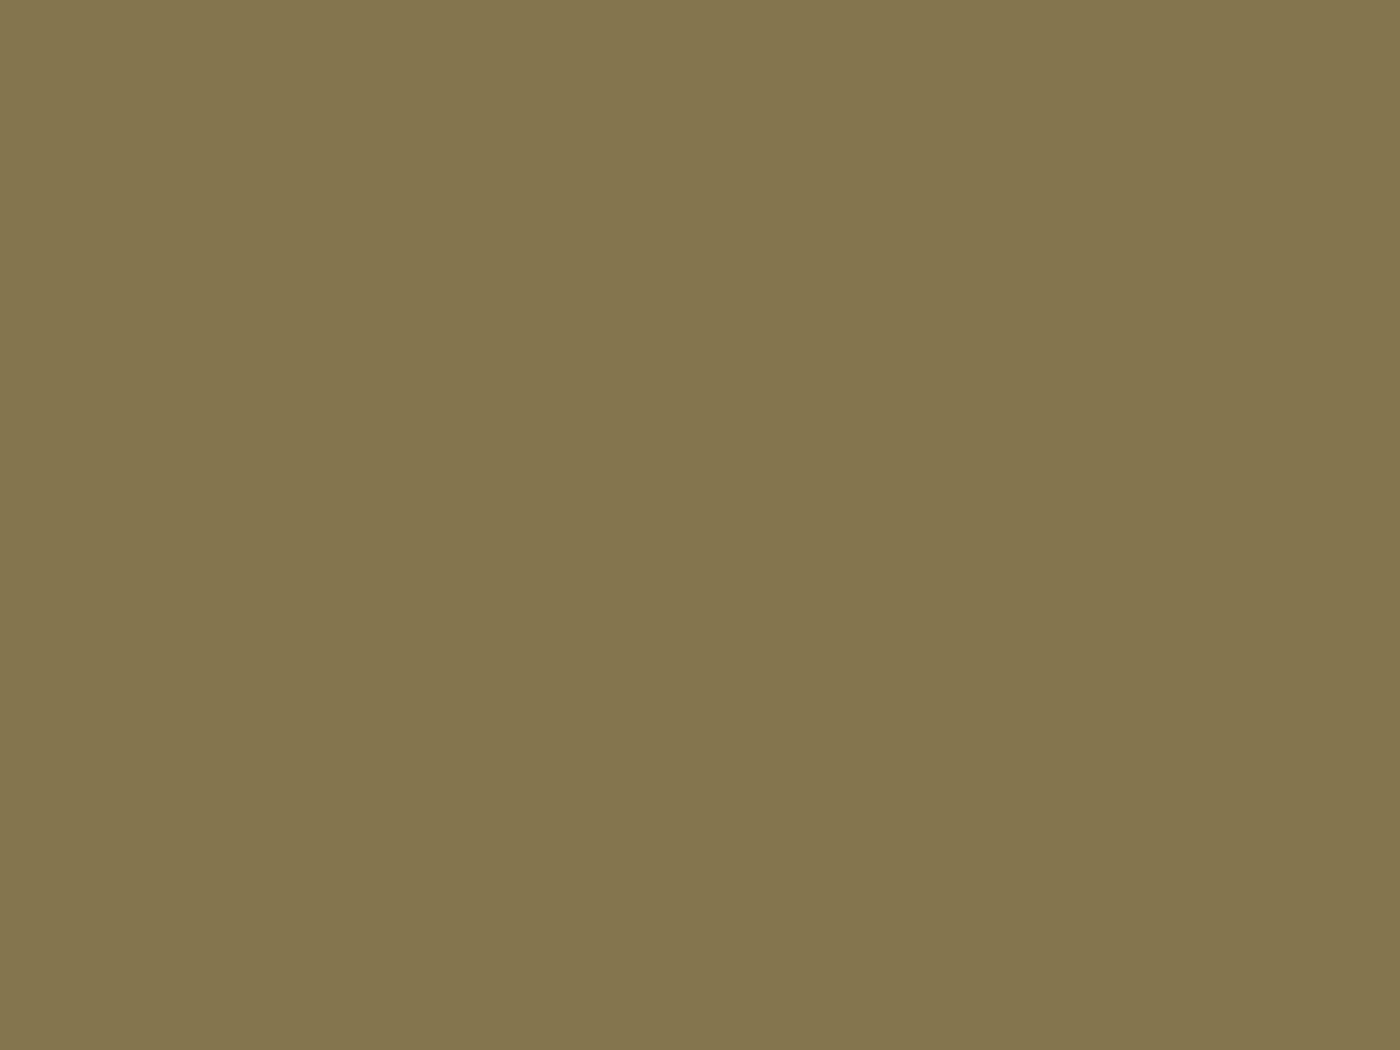 1400x1050 Gold Fusion Solid Color Background